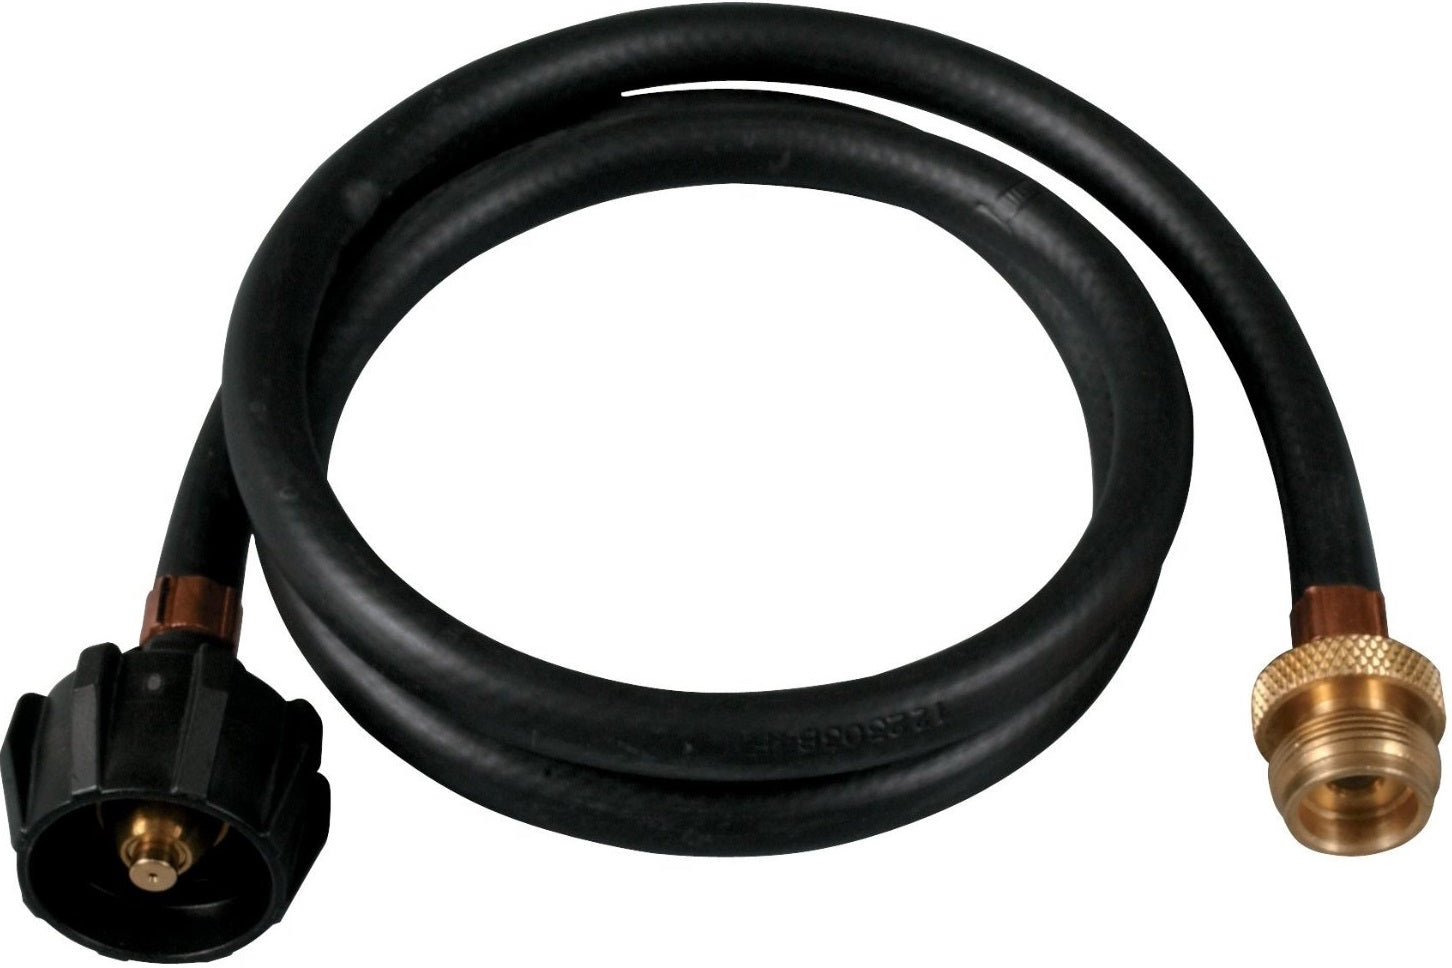 Char-broil 7184633 Hose And Adapter, 4'